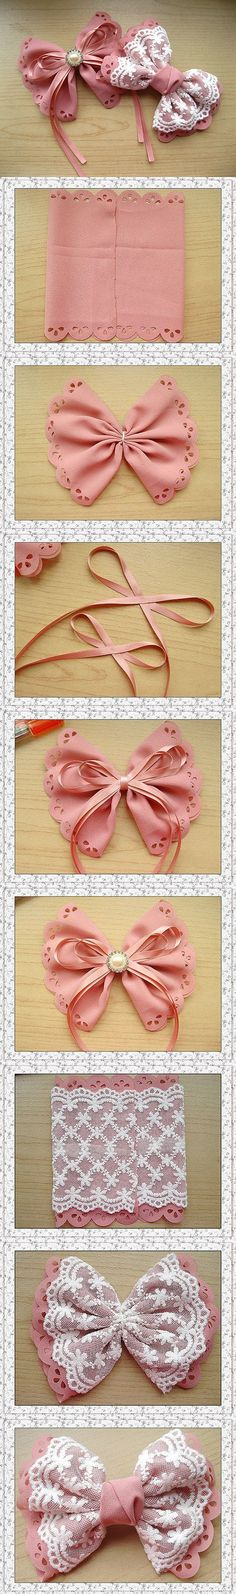 Very cute and looks to be fairly easy. Would be cute as hair bows, on cards, and even gift packages.